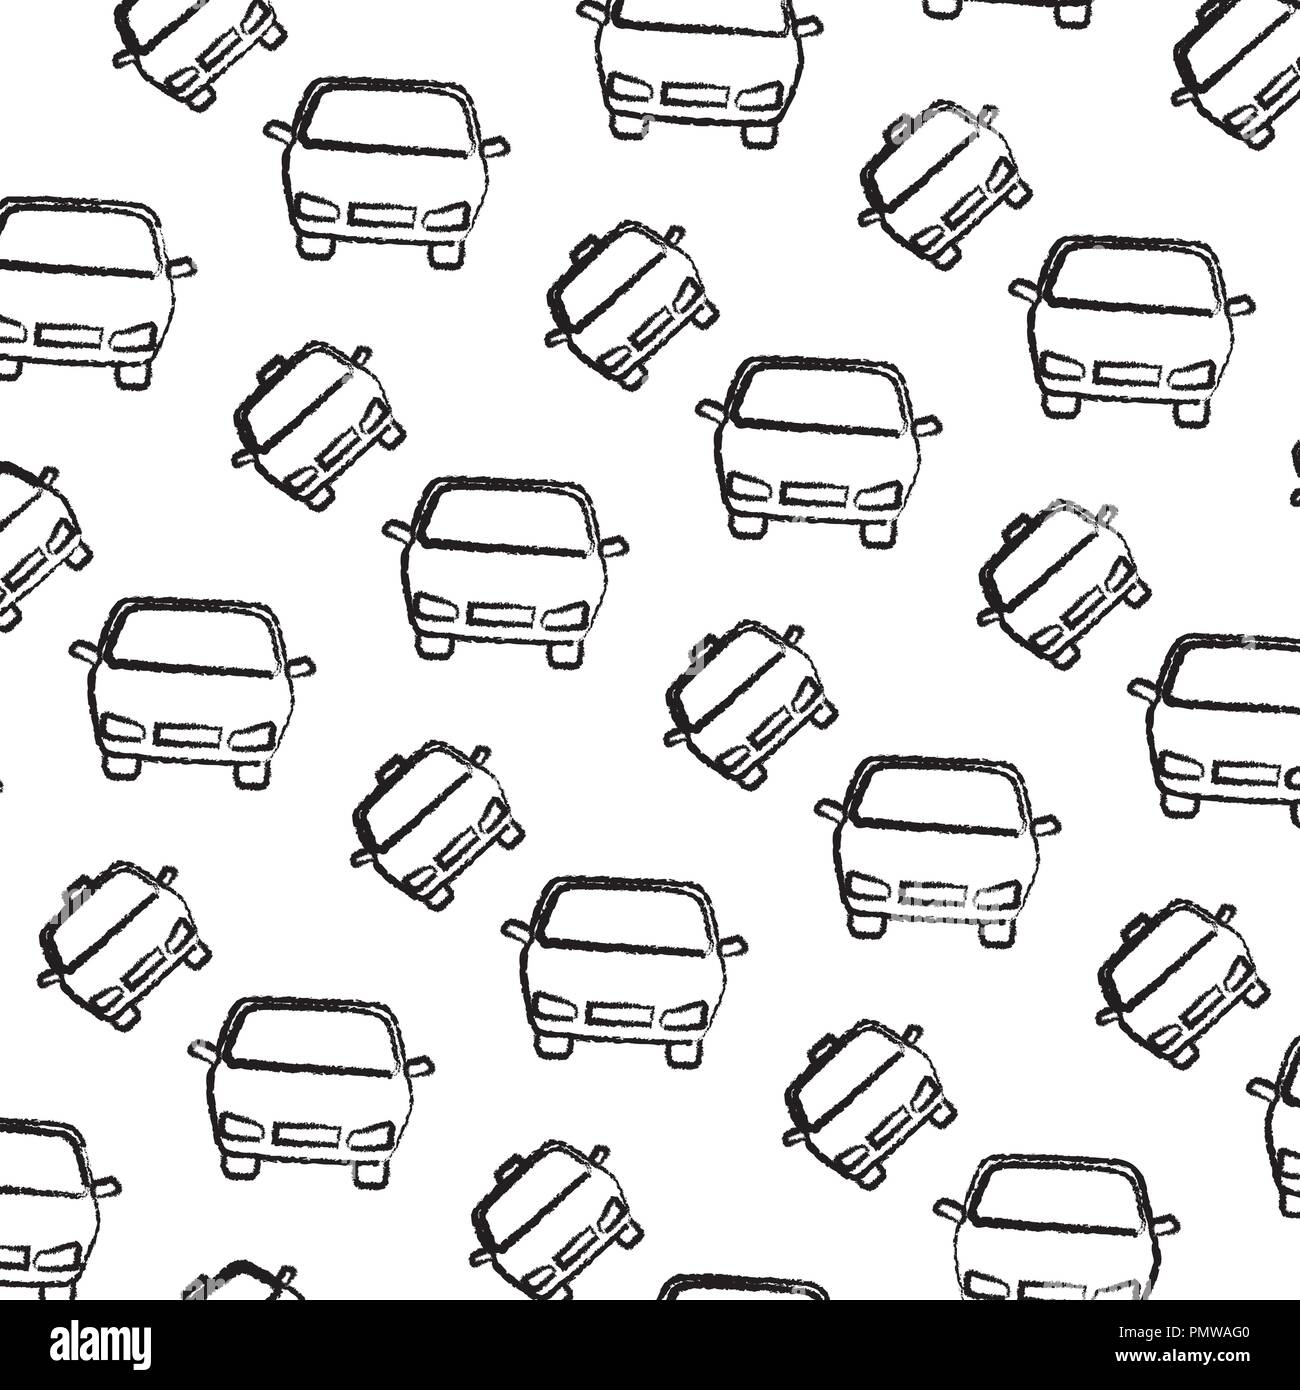 passenger cars black and white stock photos images alamy New Cool Cars taxi and cars pattern stock image